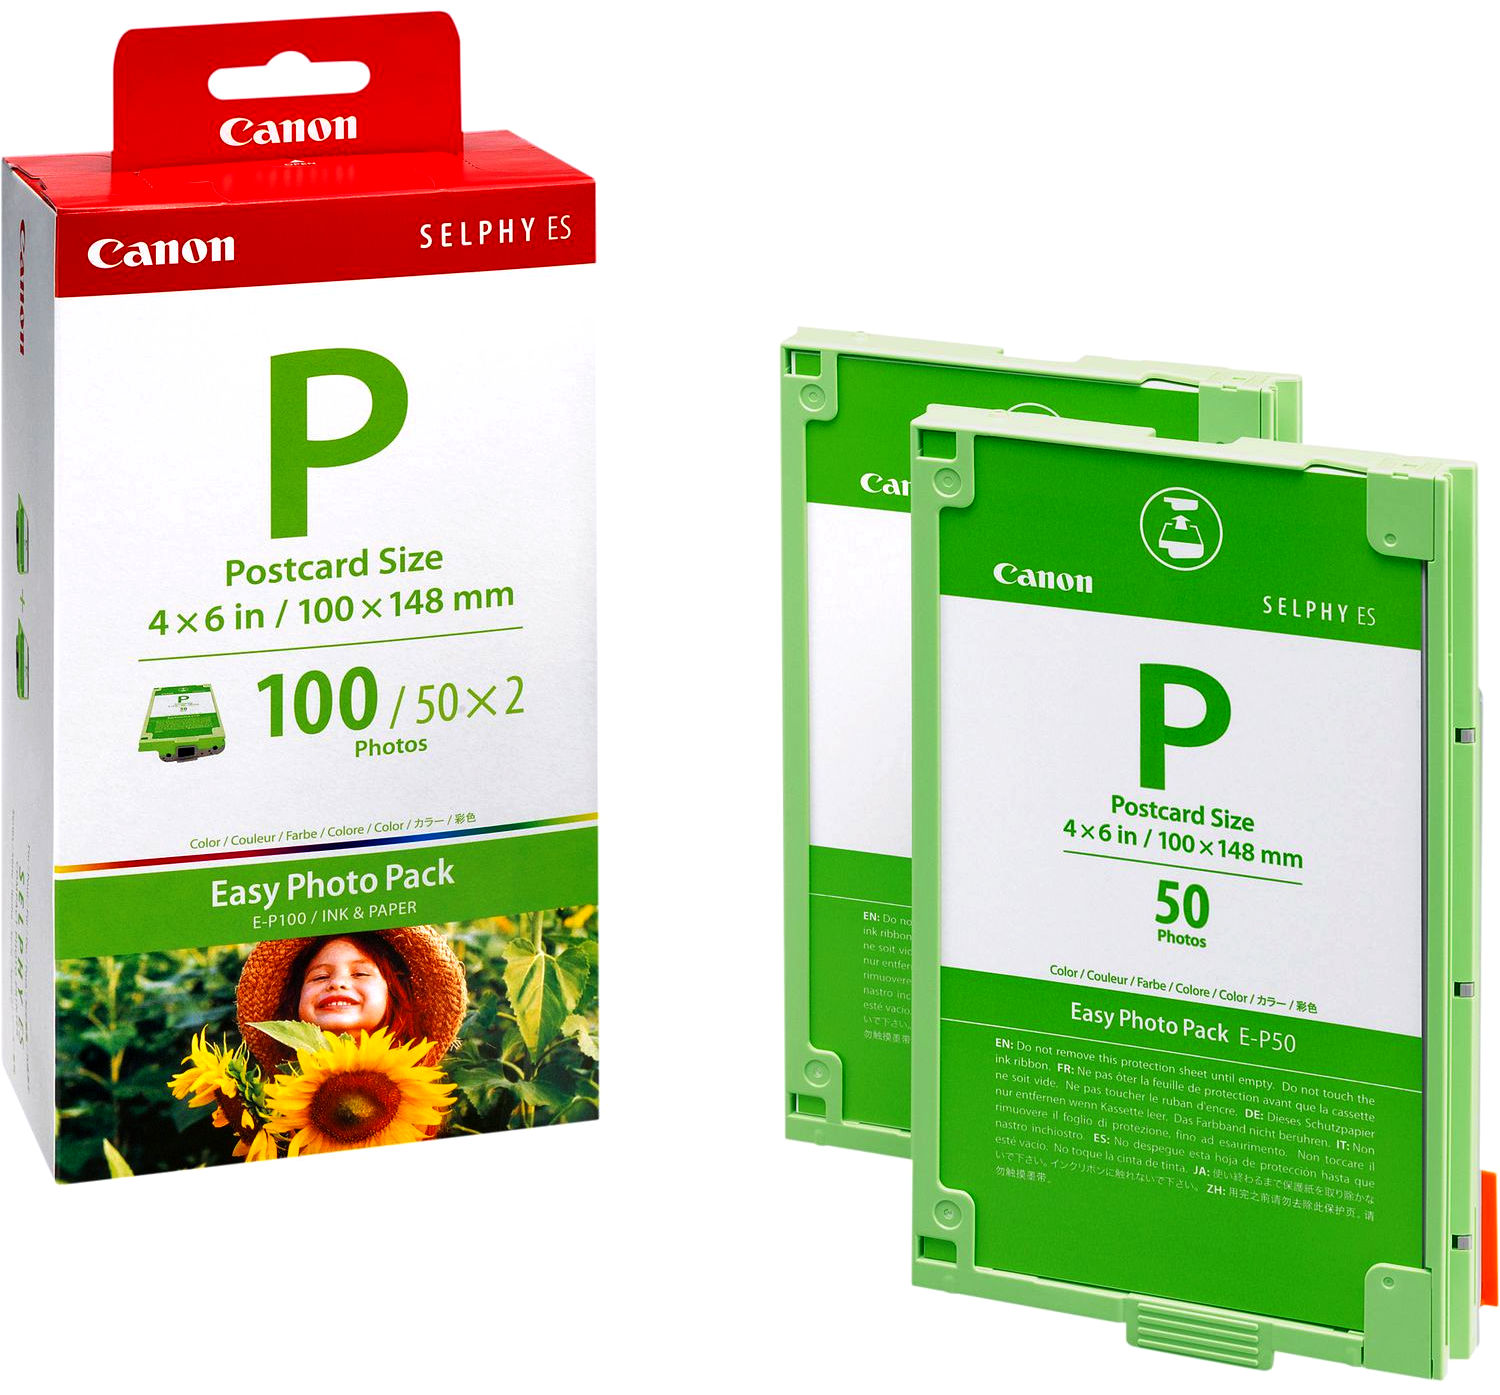 CANON SELPHY ES40 WINDOWS 8 X64 DRIVER DOWNLOAD